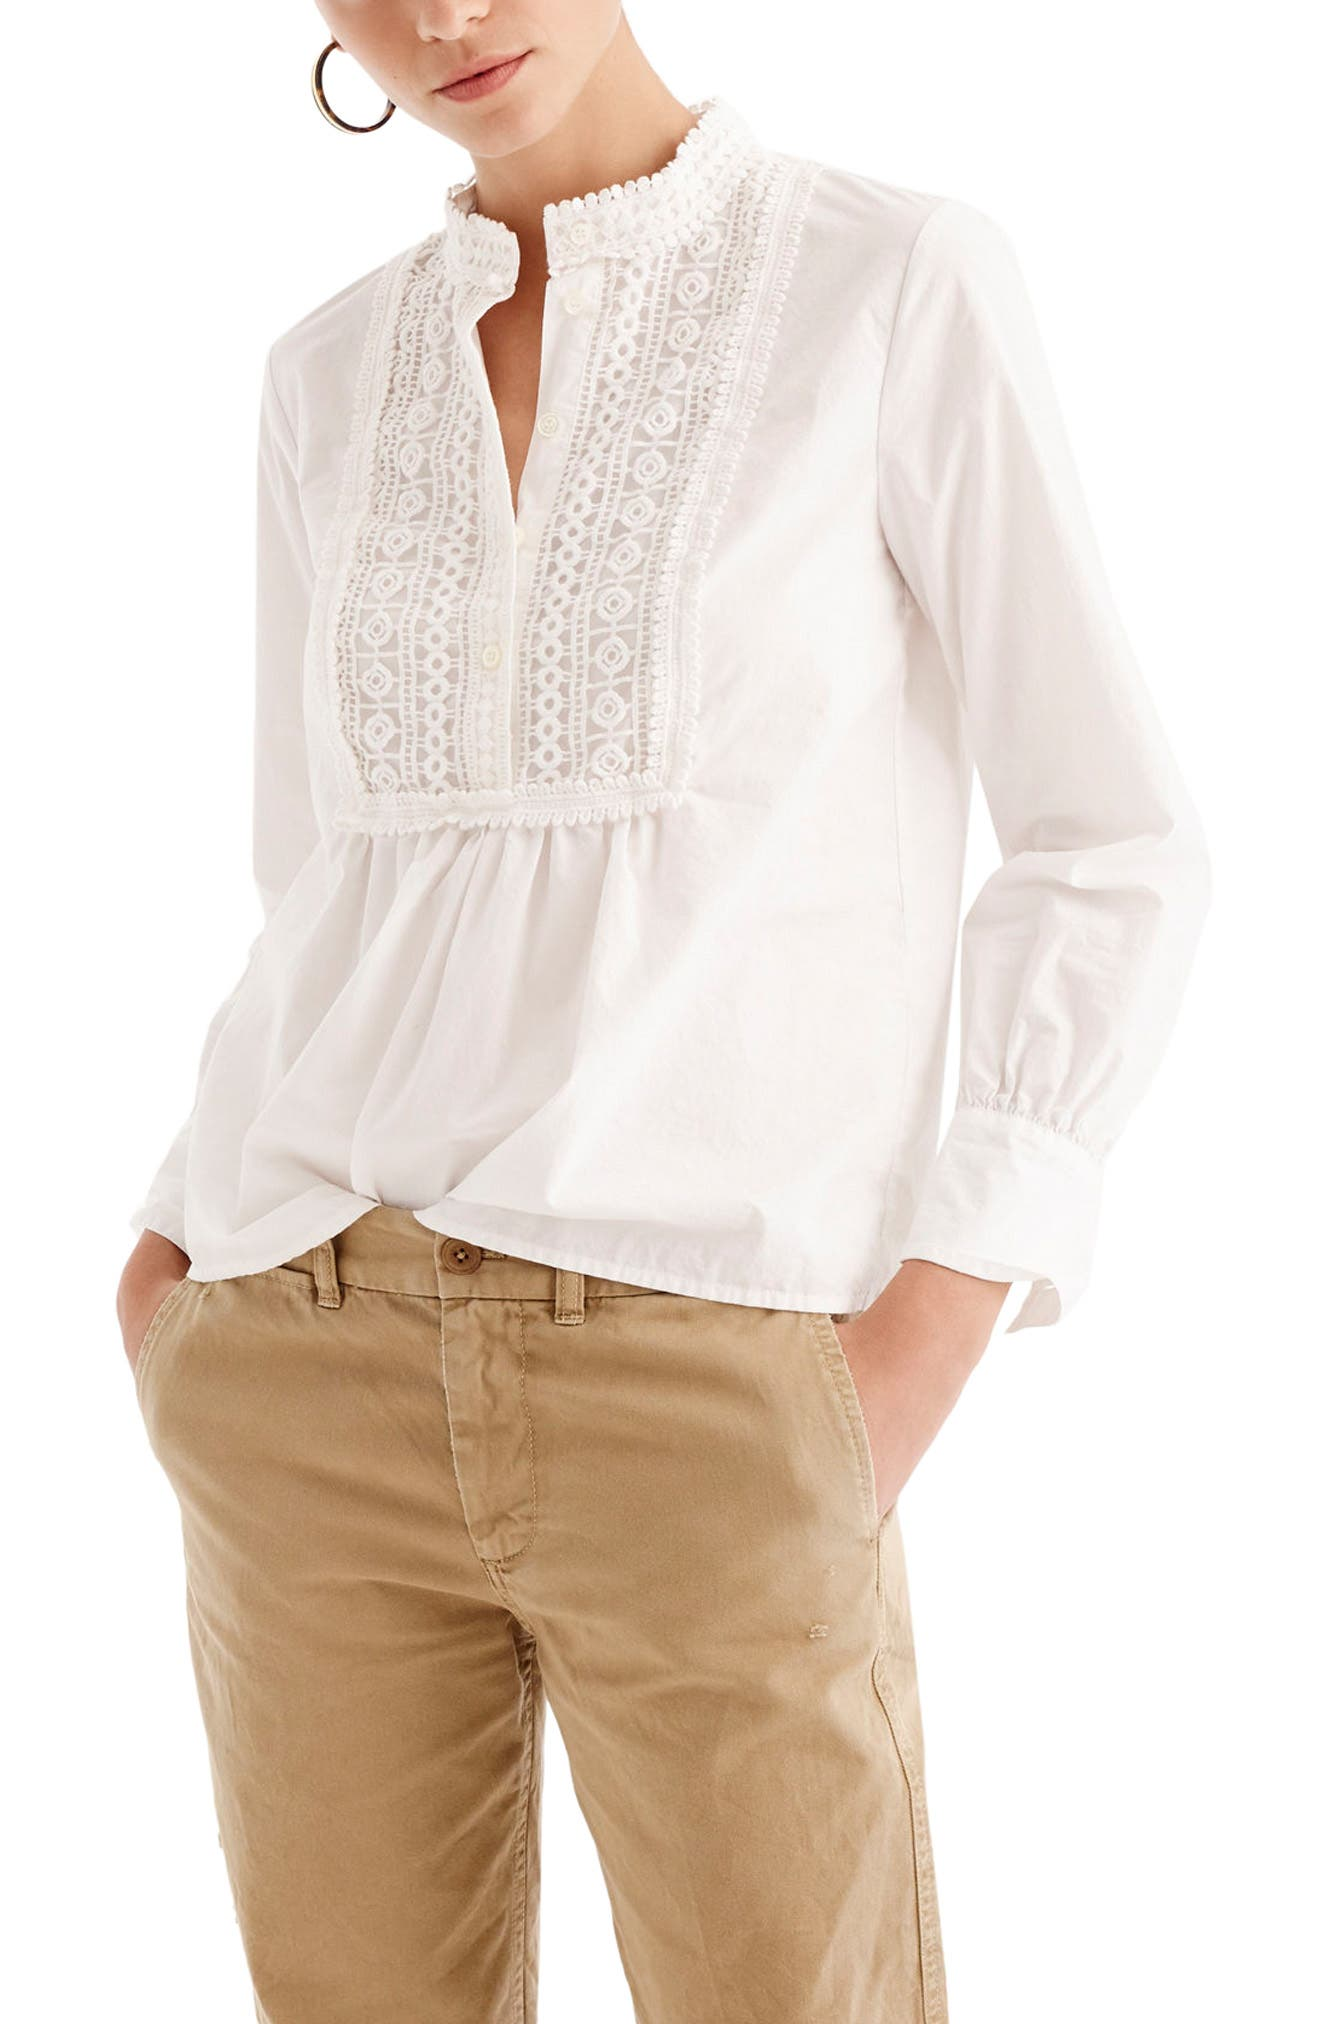 J.Crew Lace Bib Popover Shirt,                             Main thumbnail 1, color,                             White